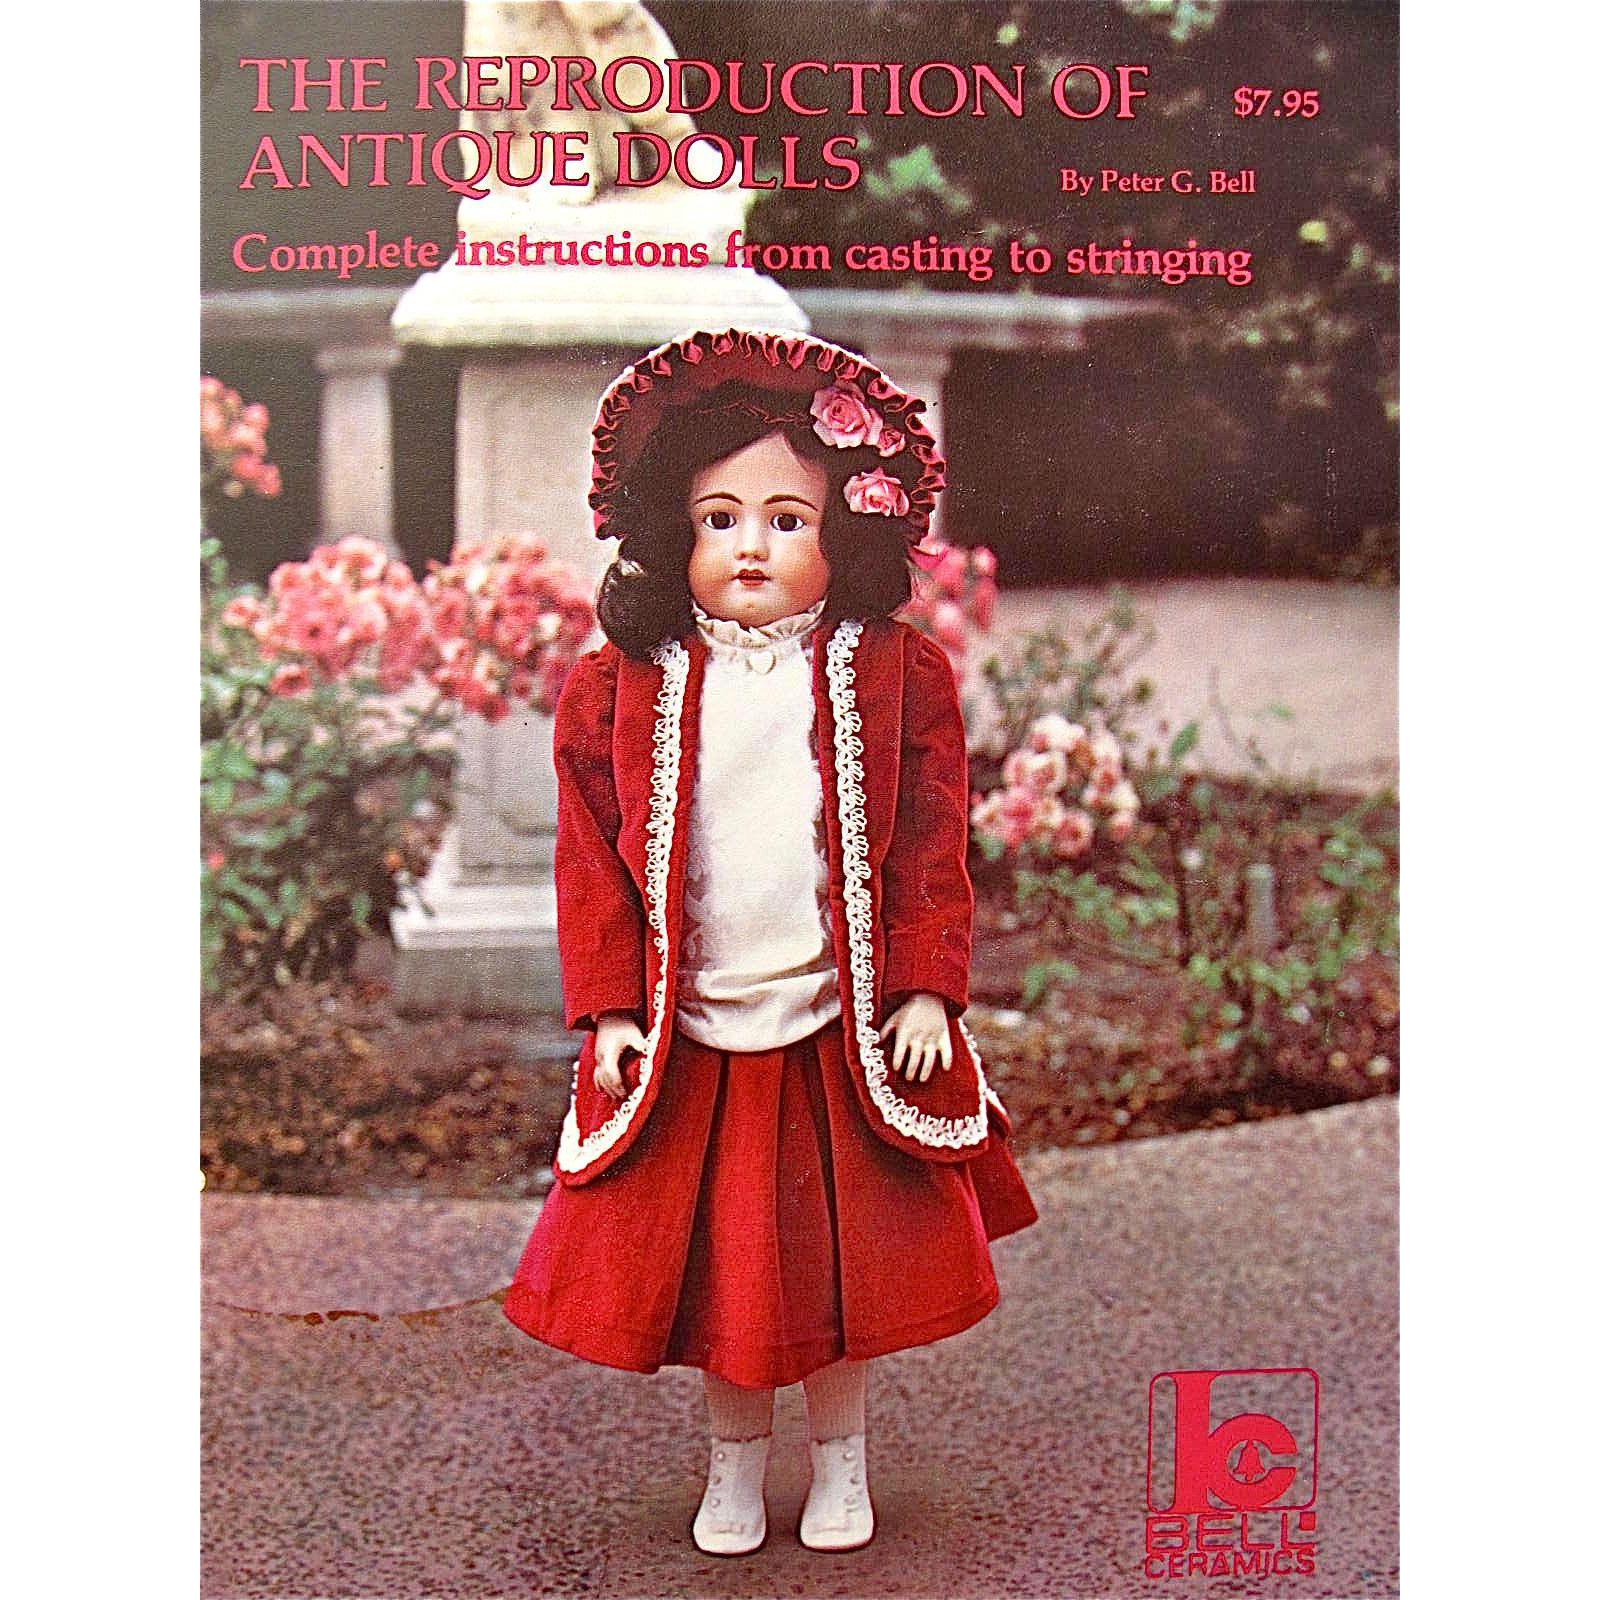 The Reproduction Of Antique Dolls, Book by Peter G. Bell, Dated 1982